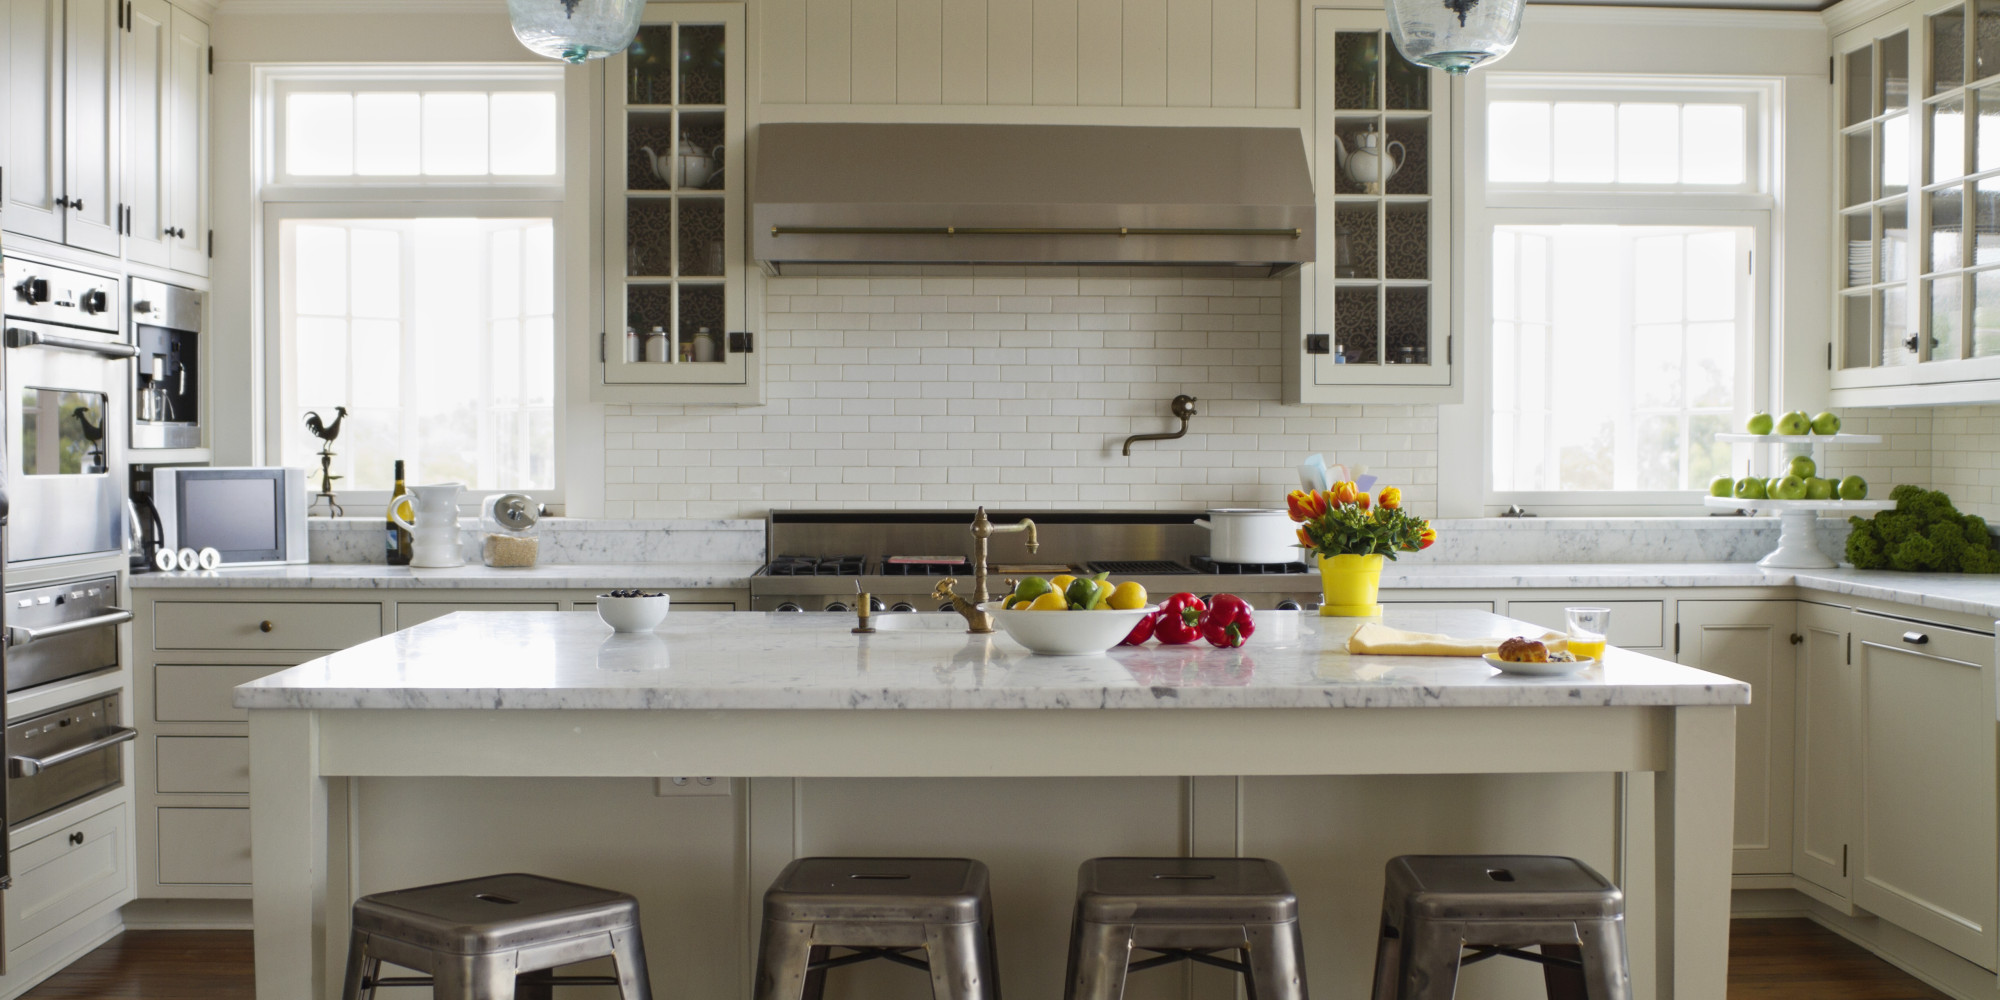 The 3 Biggest Kitchen Trends Of 2014 Might Surprise You (PHOTOS ...